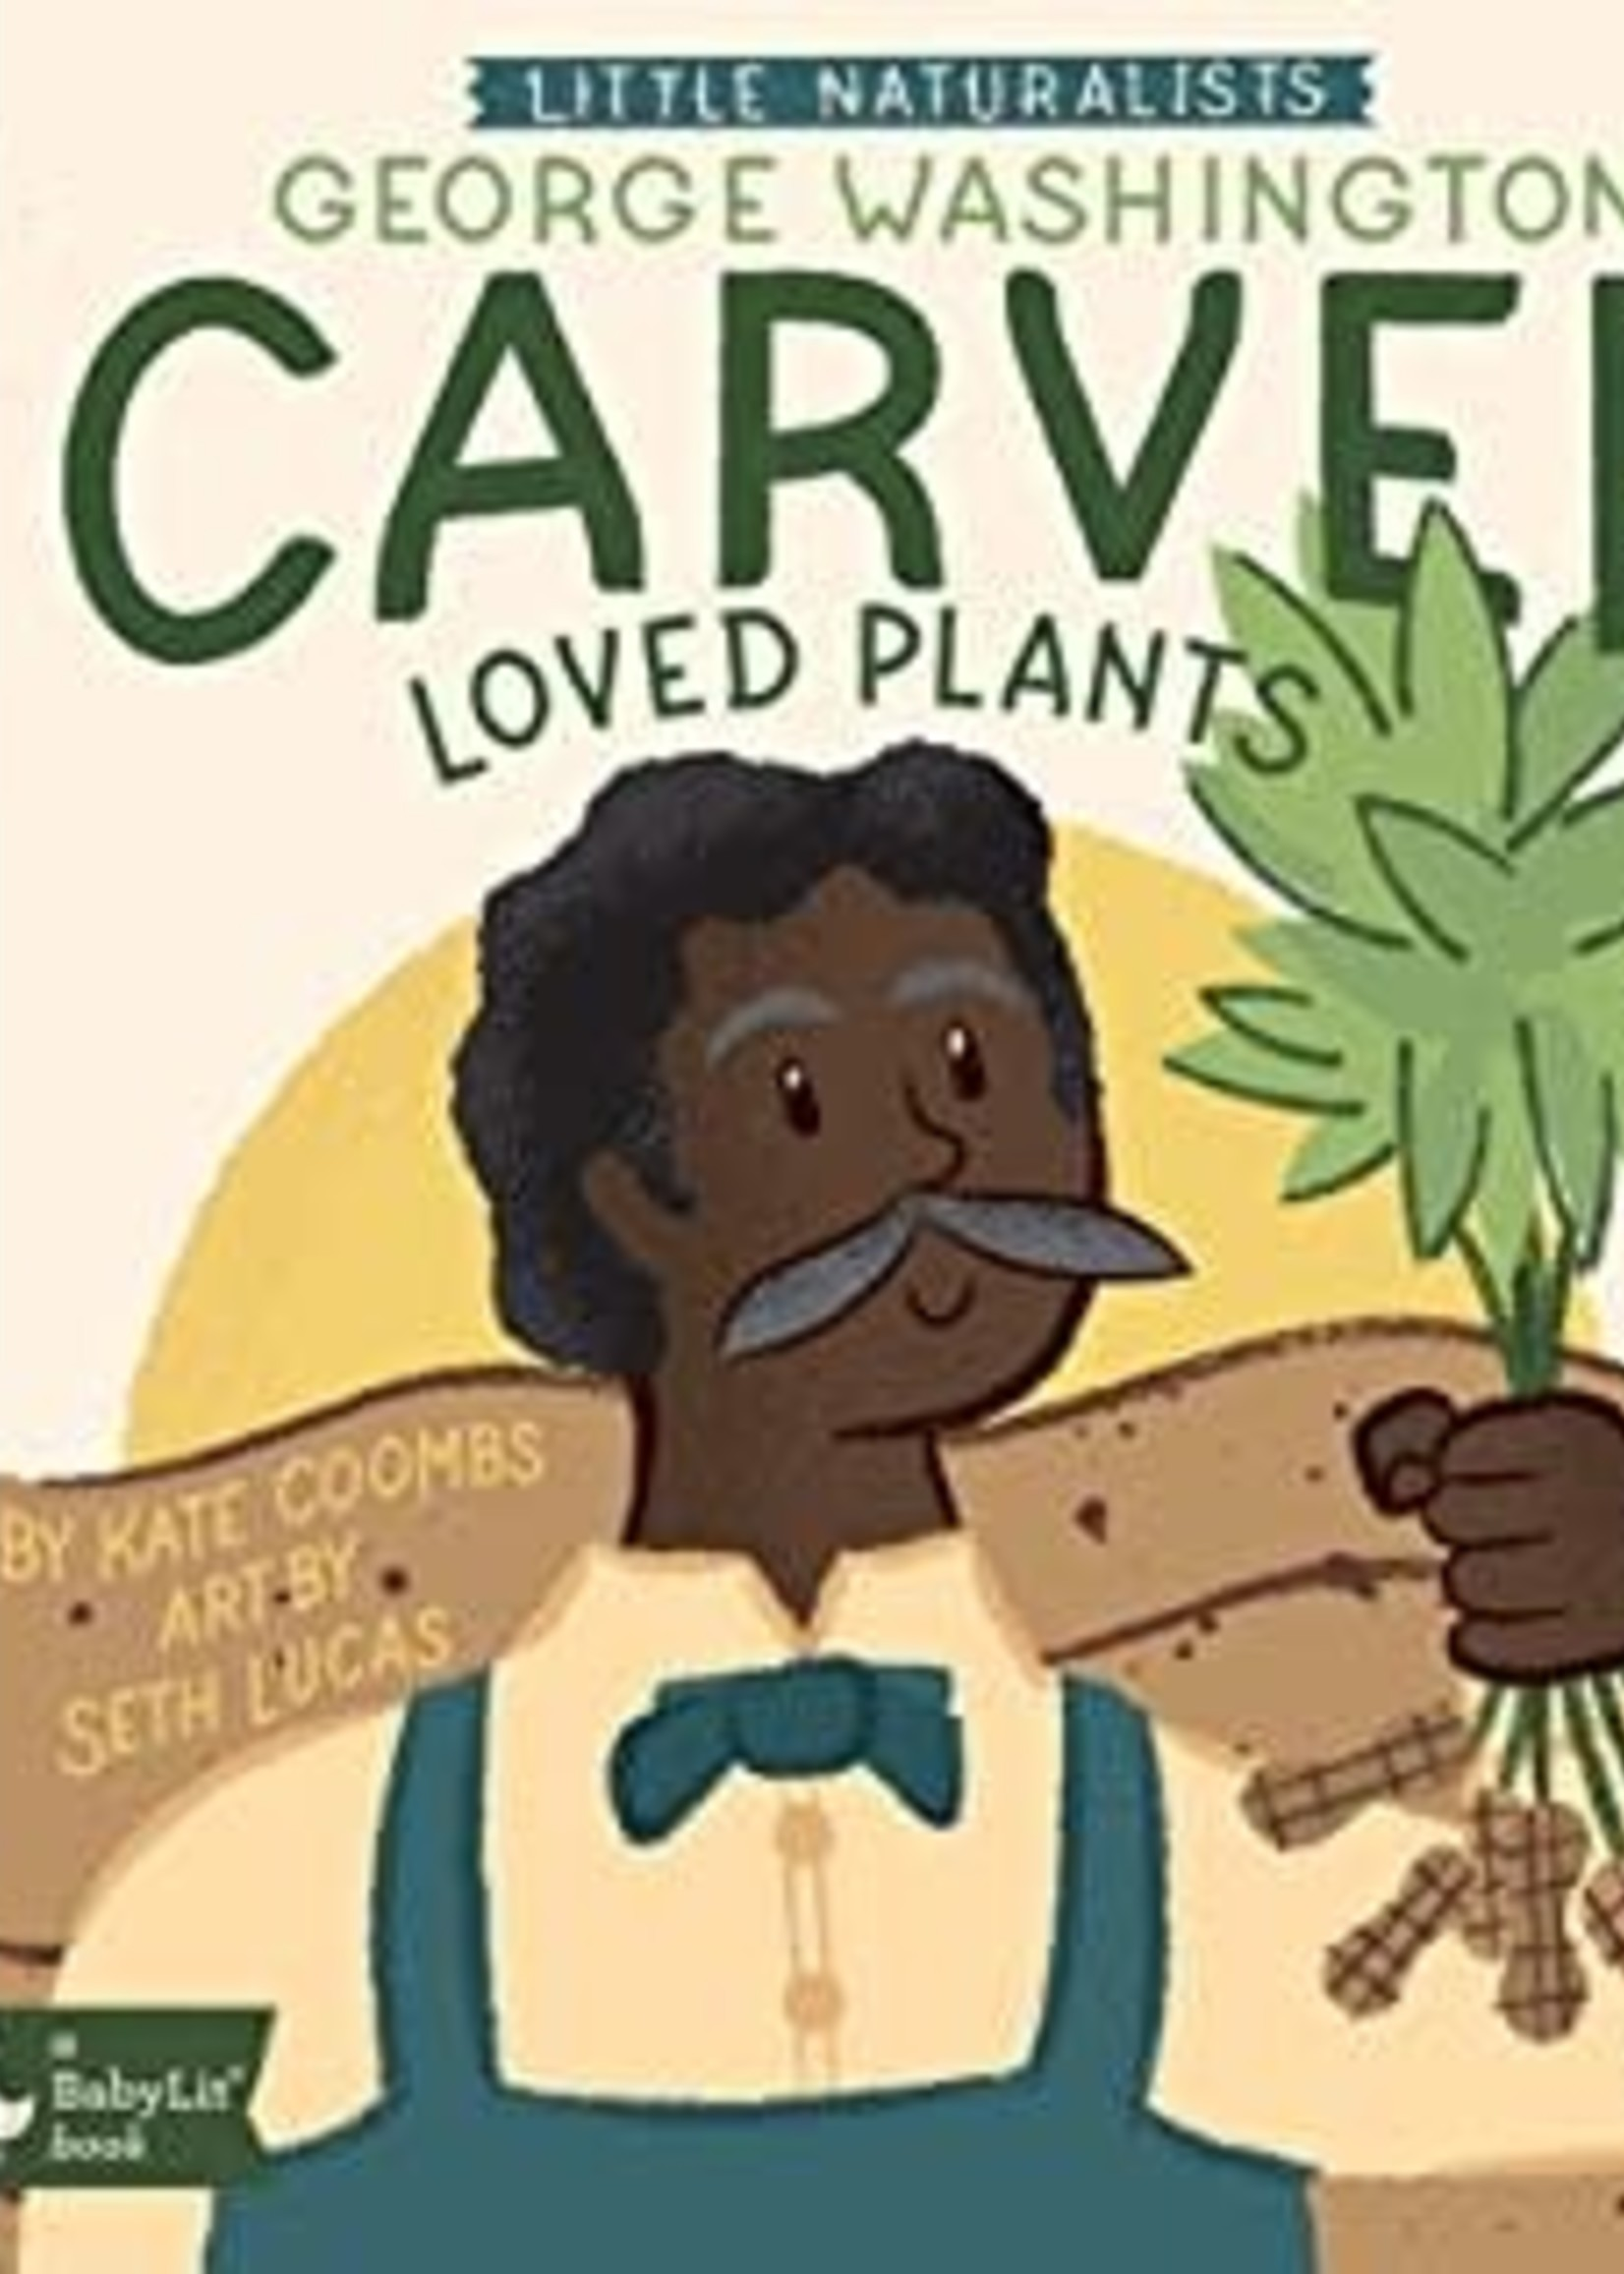 Little Naturalists George Washington Carver Loved Plants by Kate Coombs